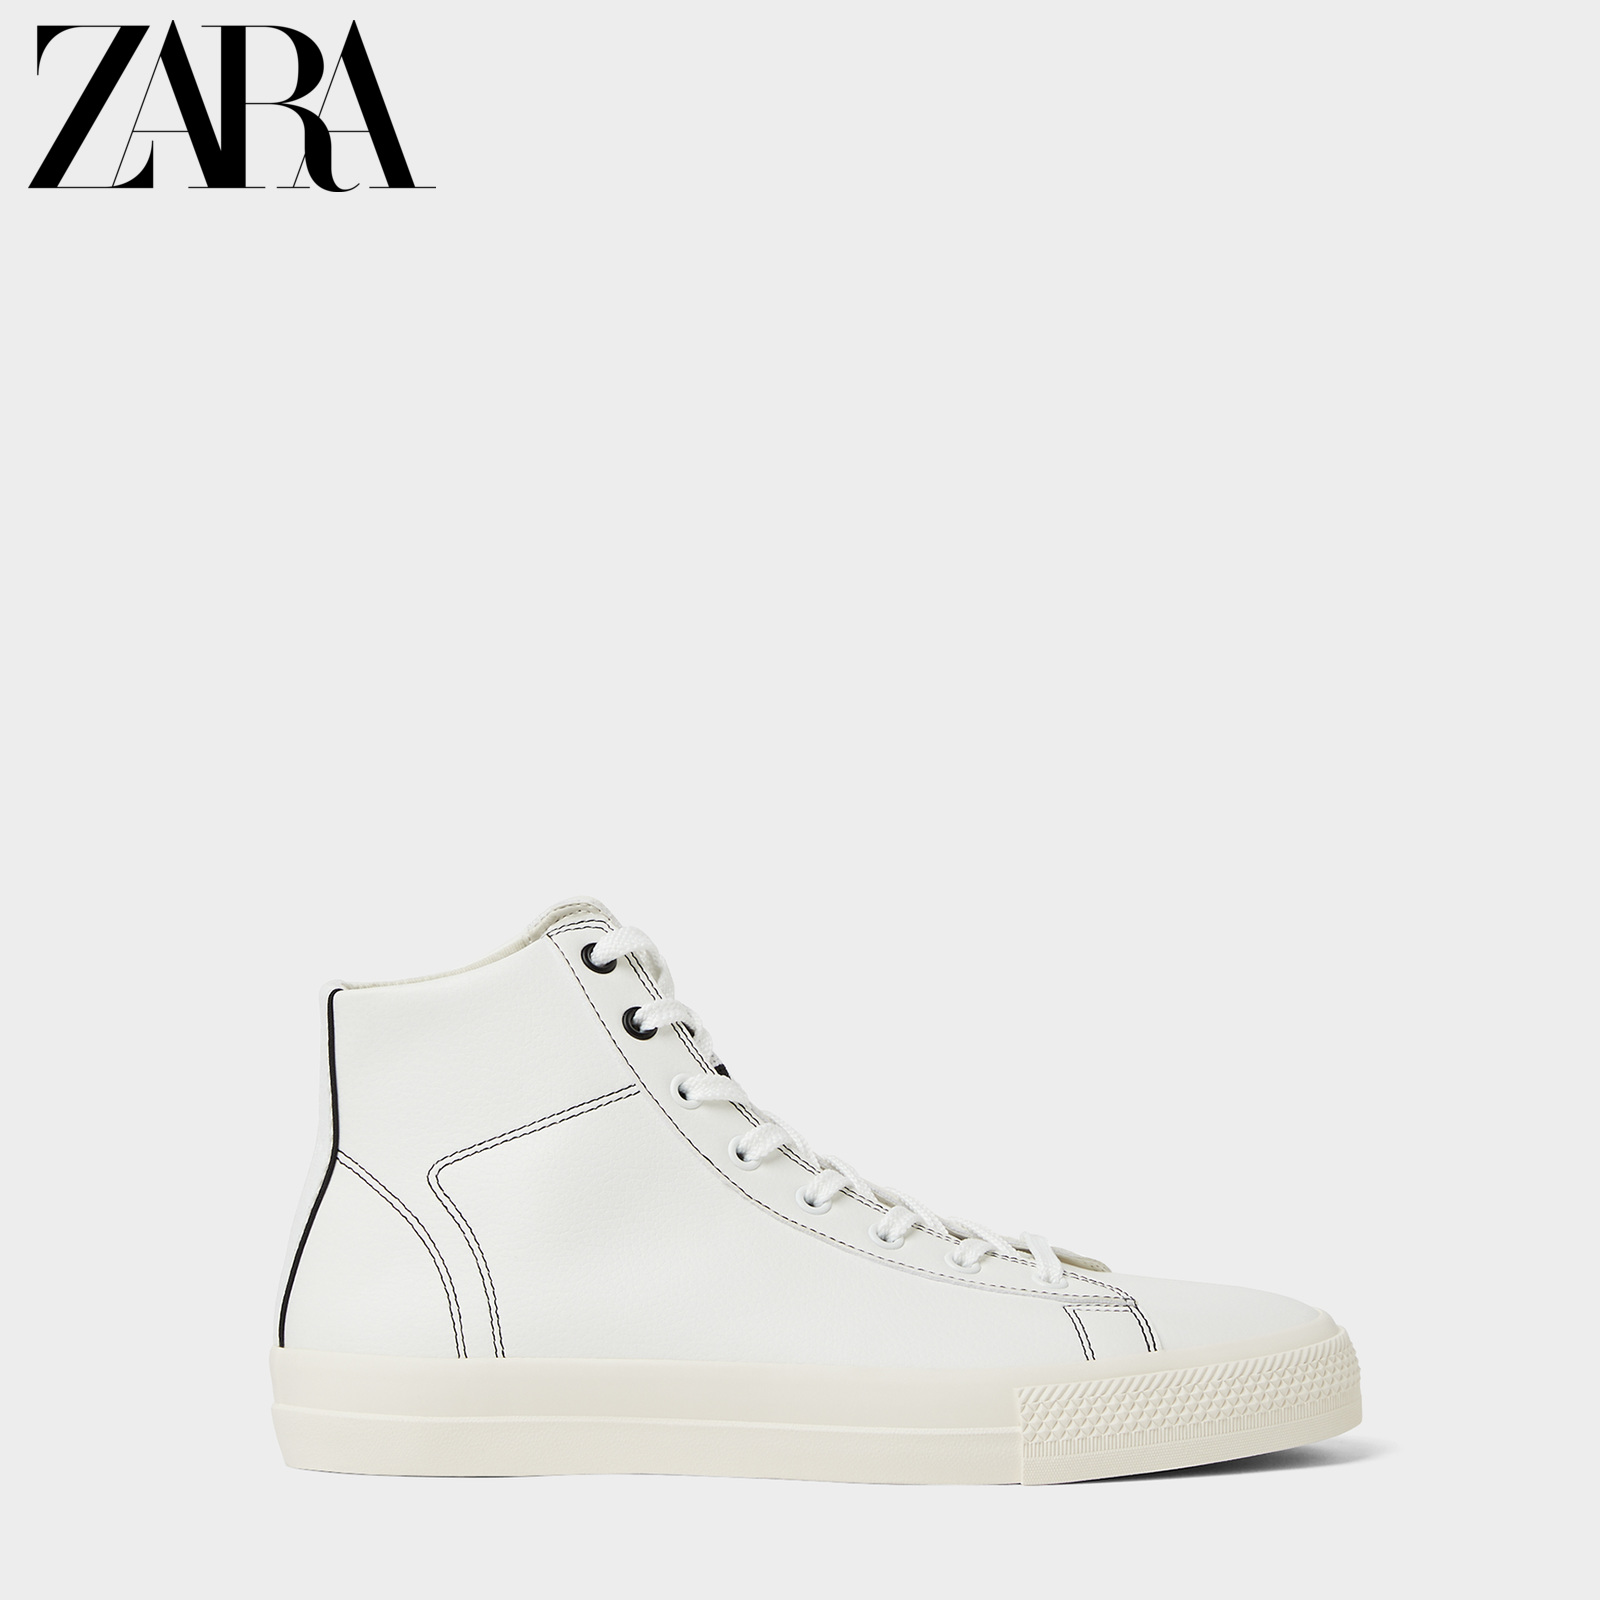 Zara new men's shoes white high top sports Martin Short Boots 12103520001